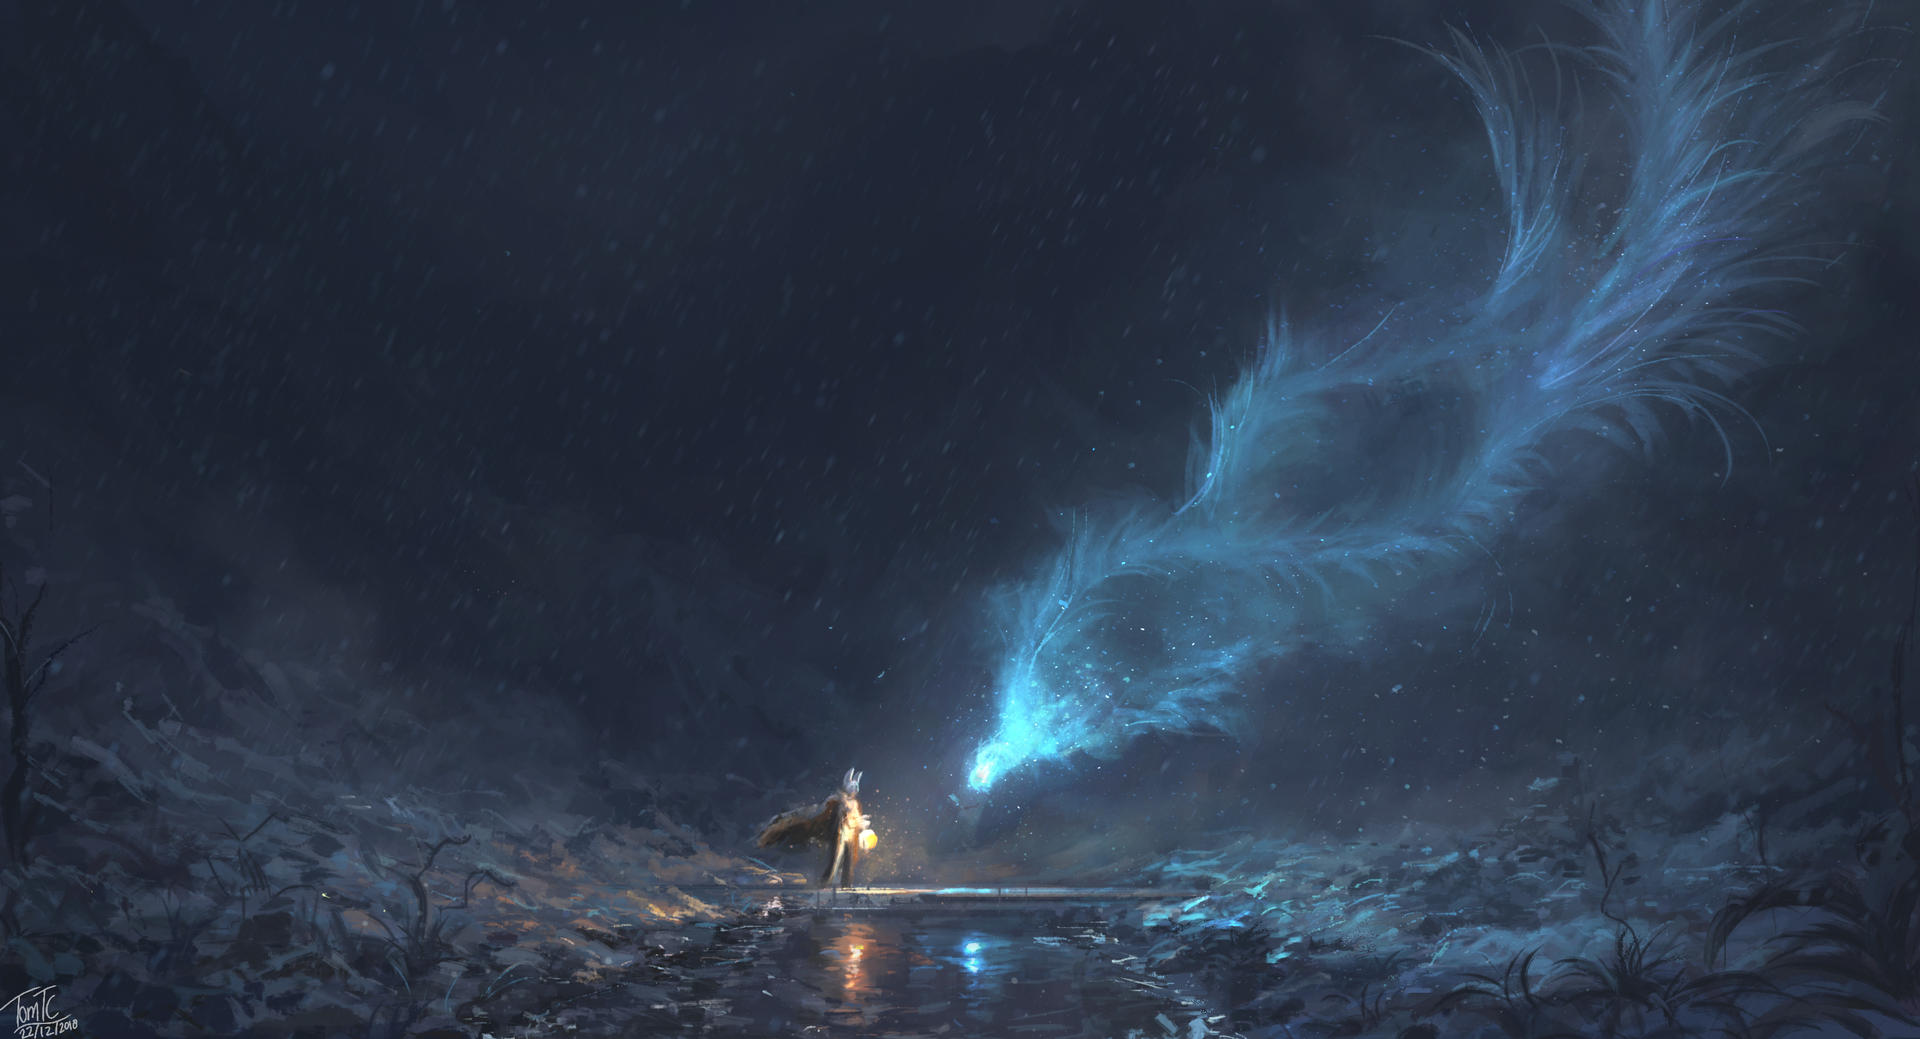 Encounter with The Winter Spirit